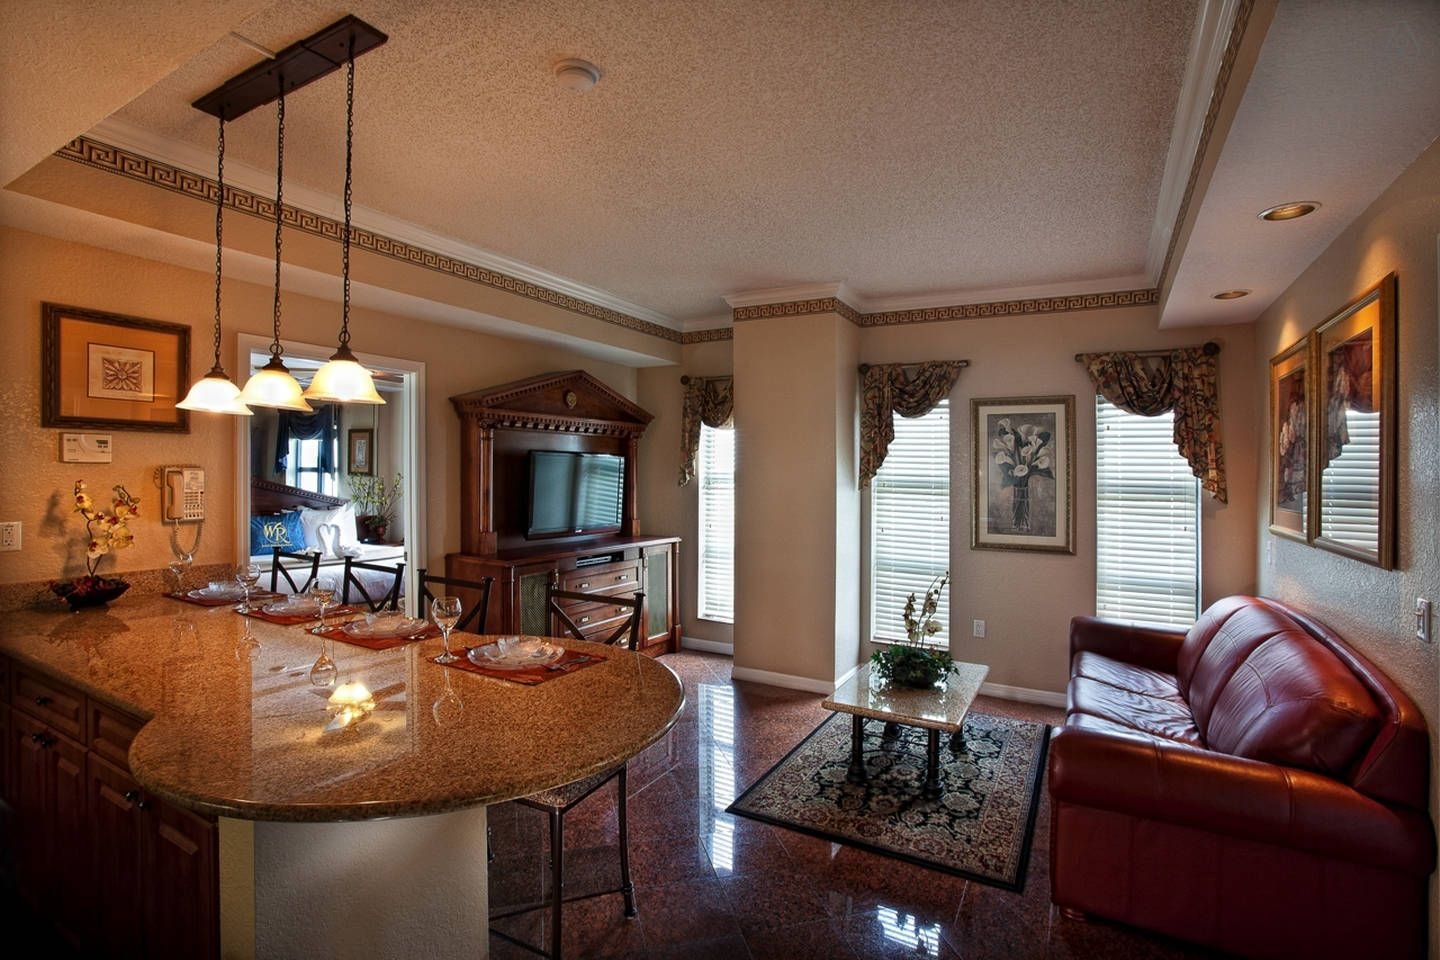 Westgate Palace Resort 2bedr' 1 vacation rental in